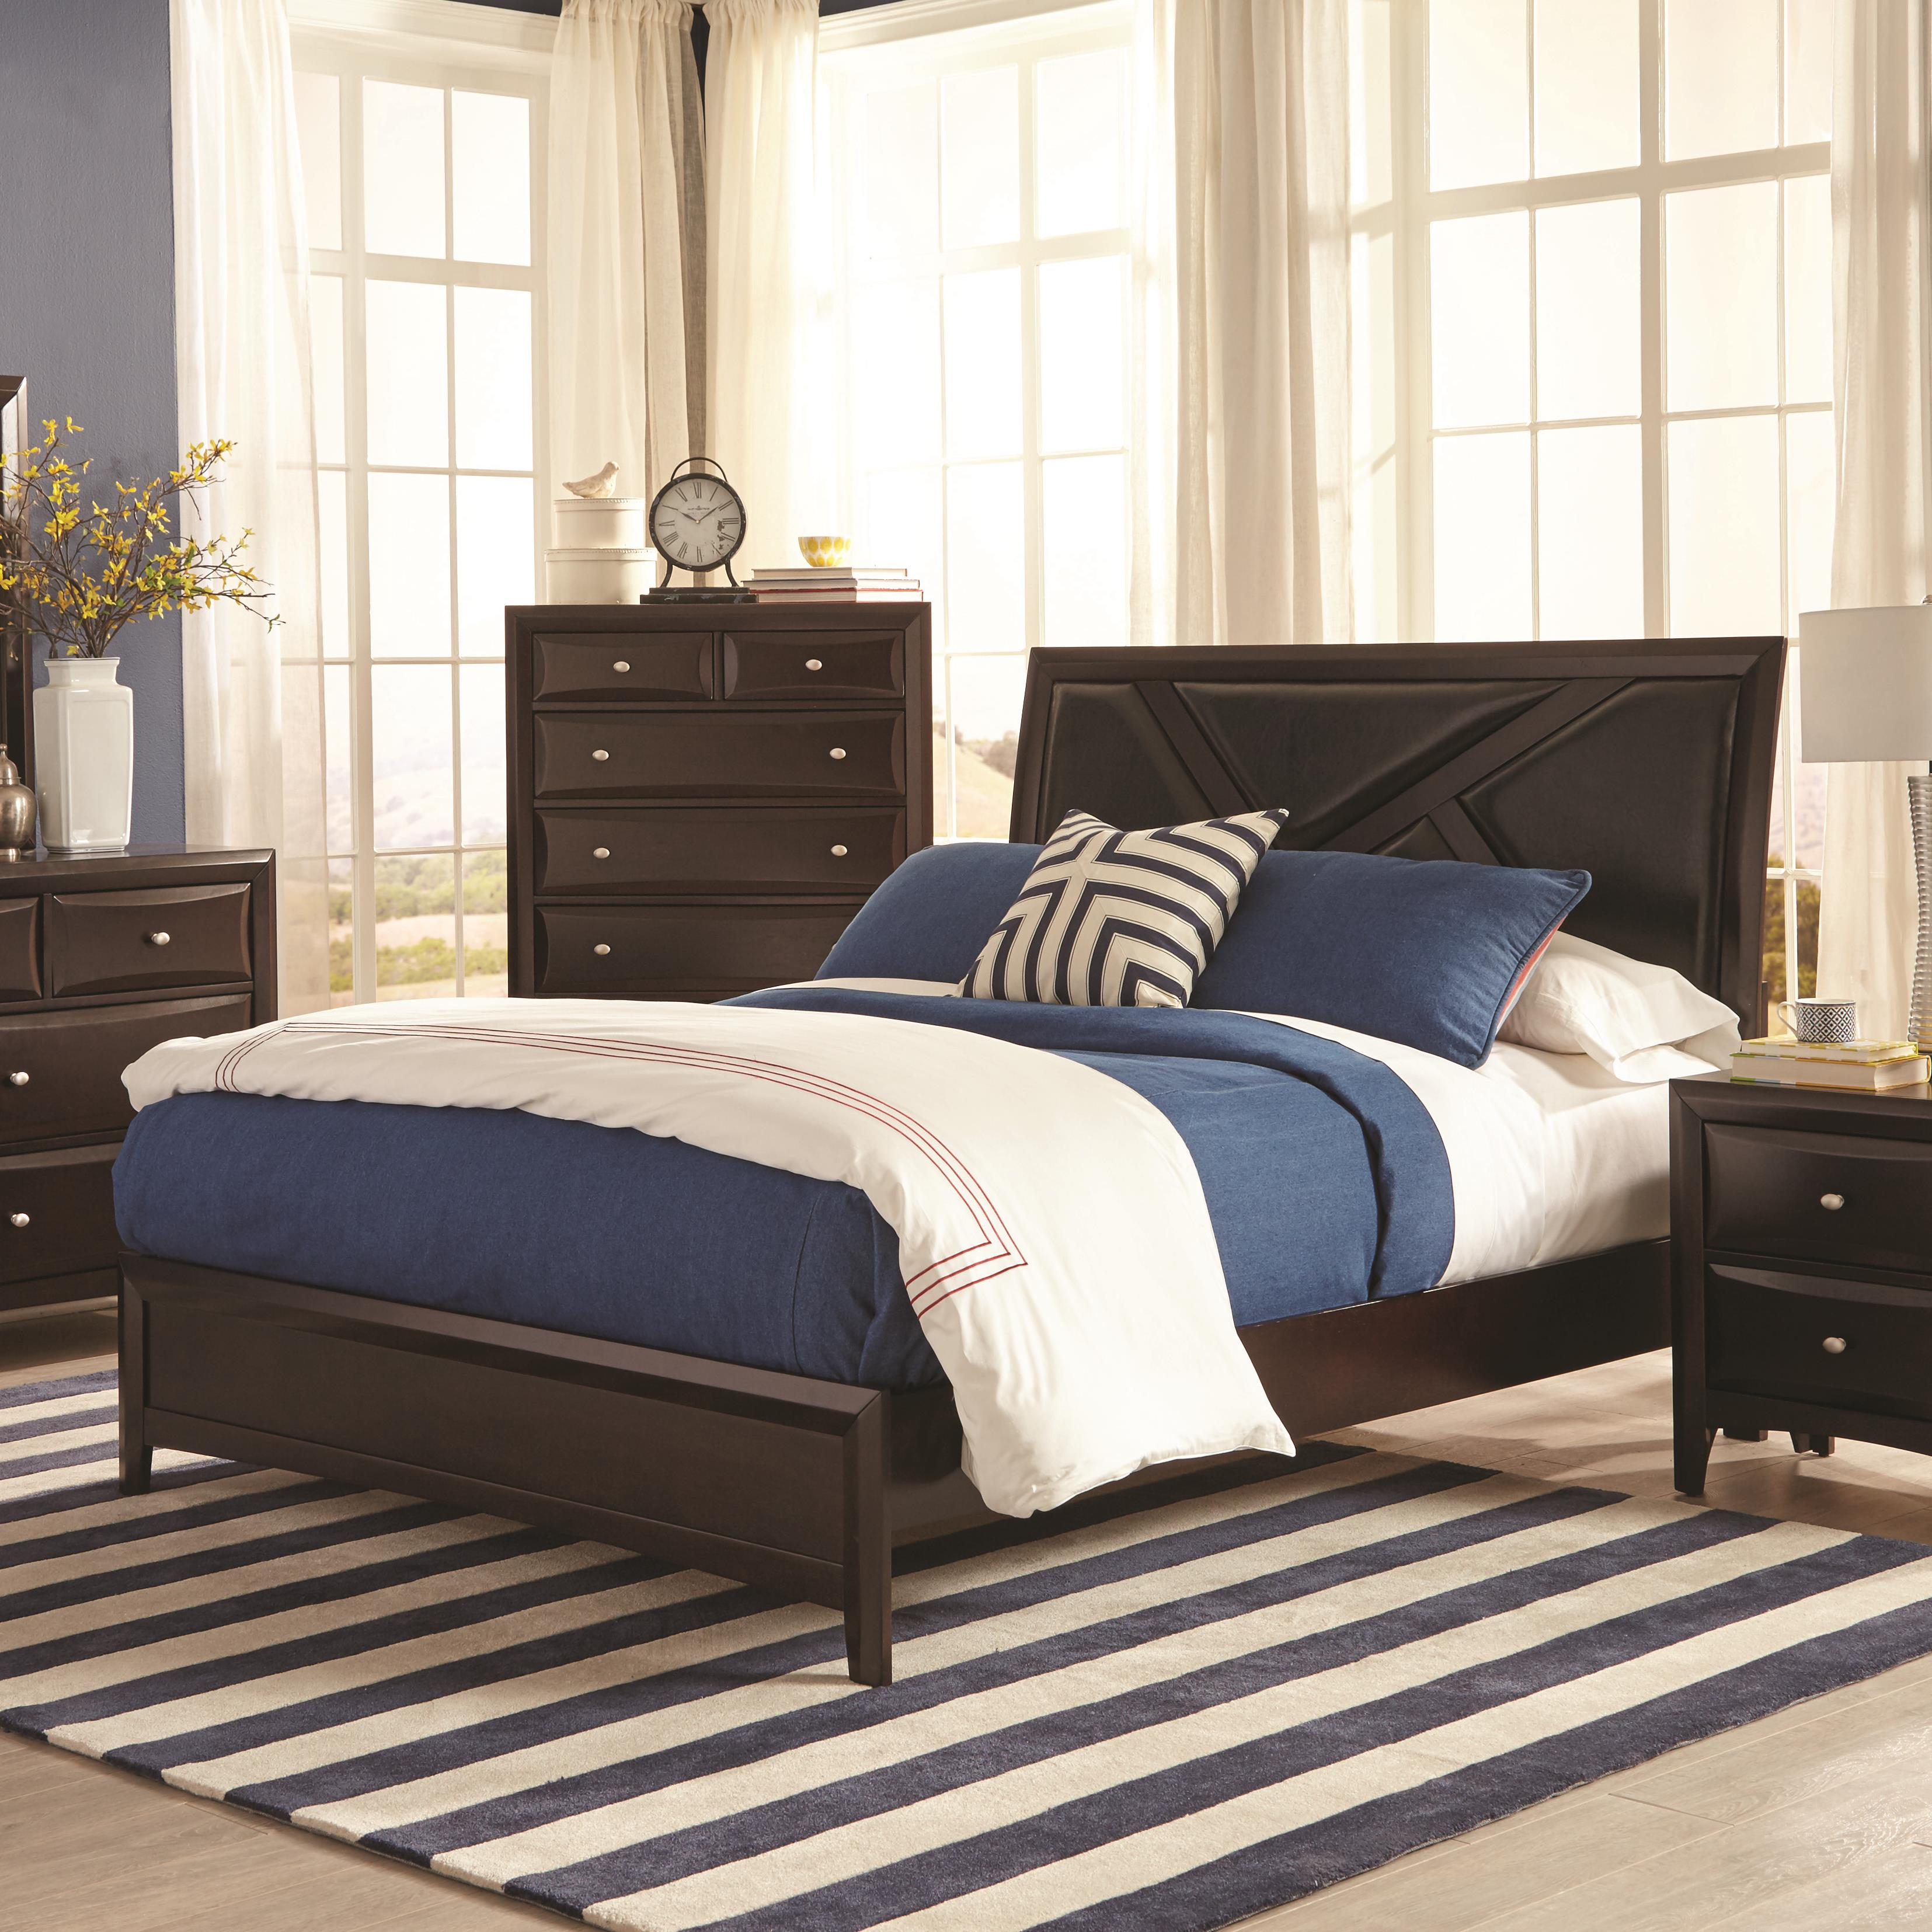 Coaster Rossville Queen Bed - Item Number: 204381Q